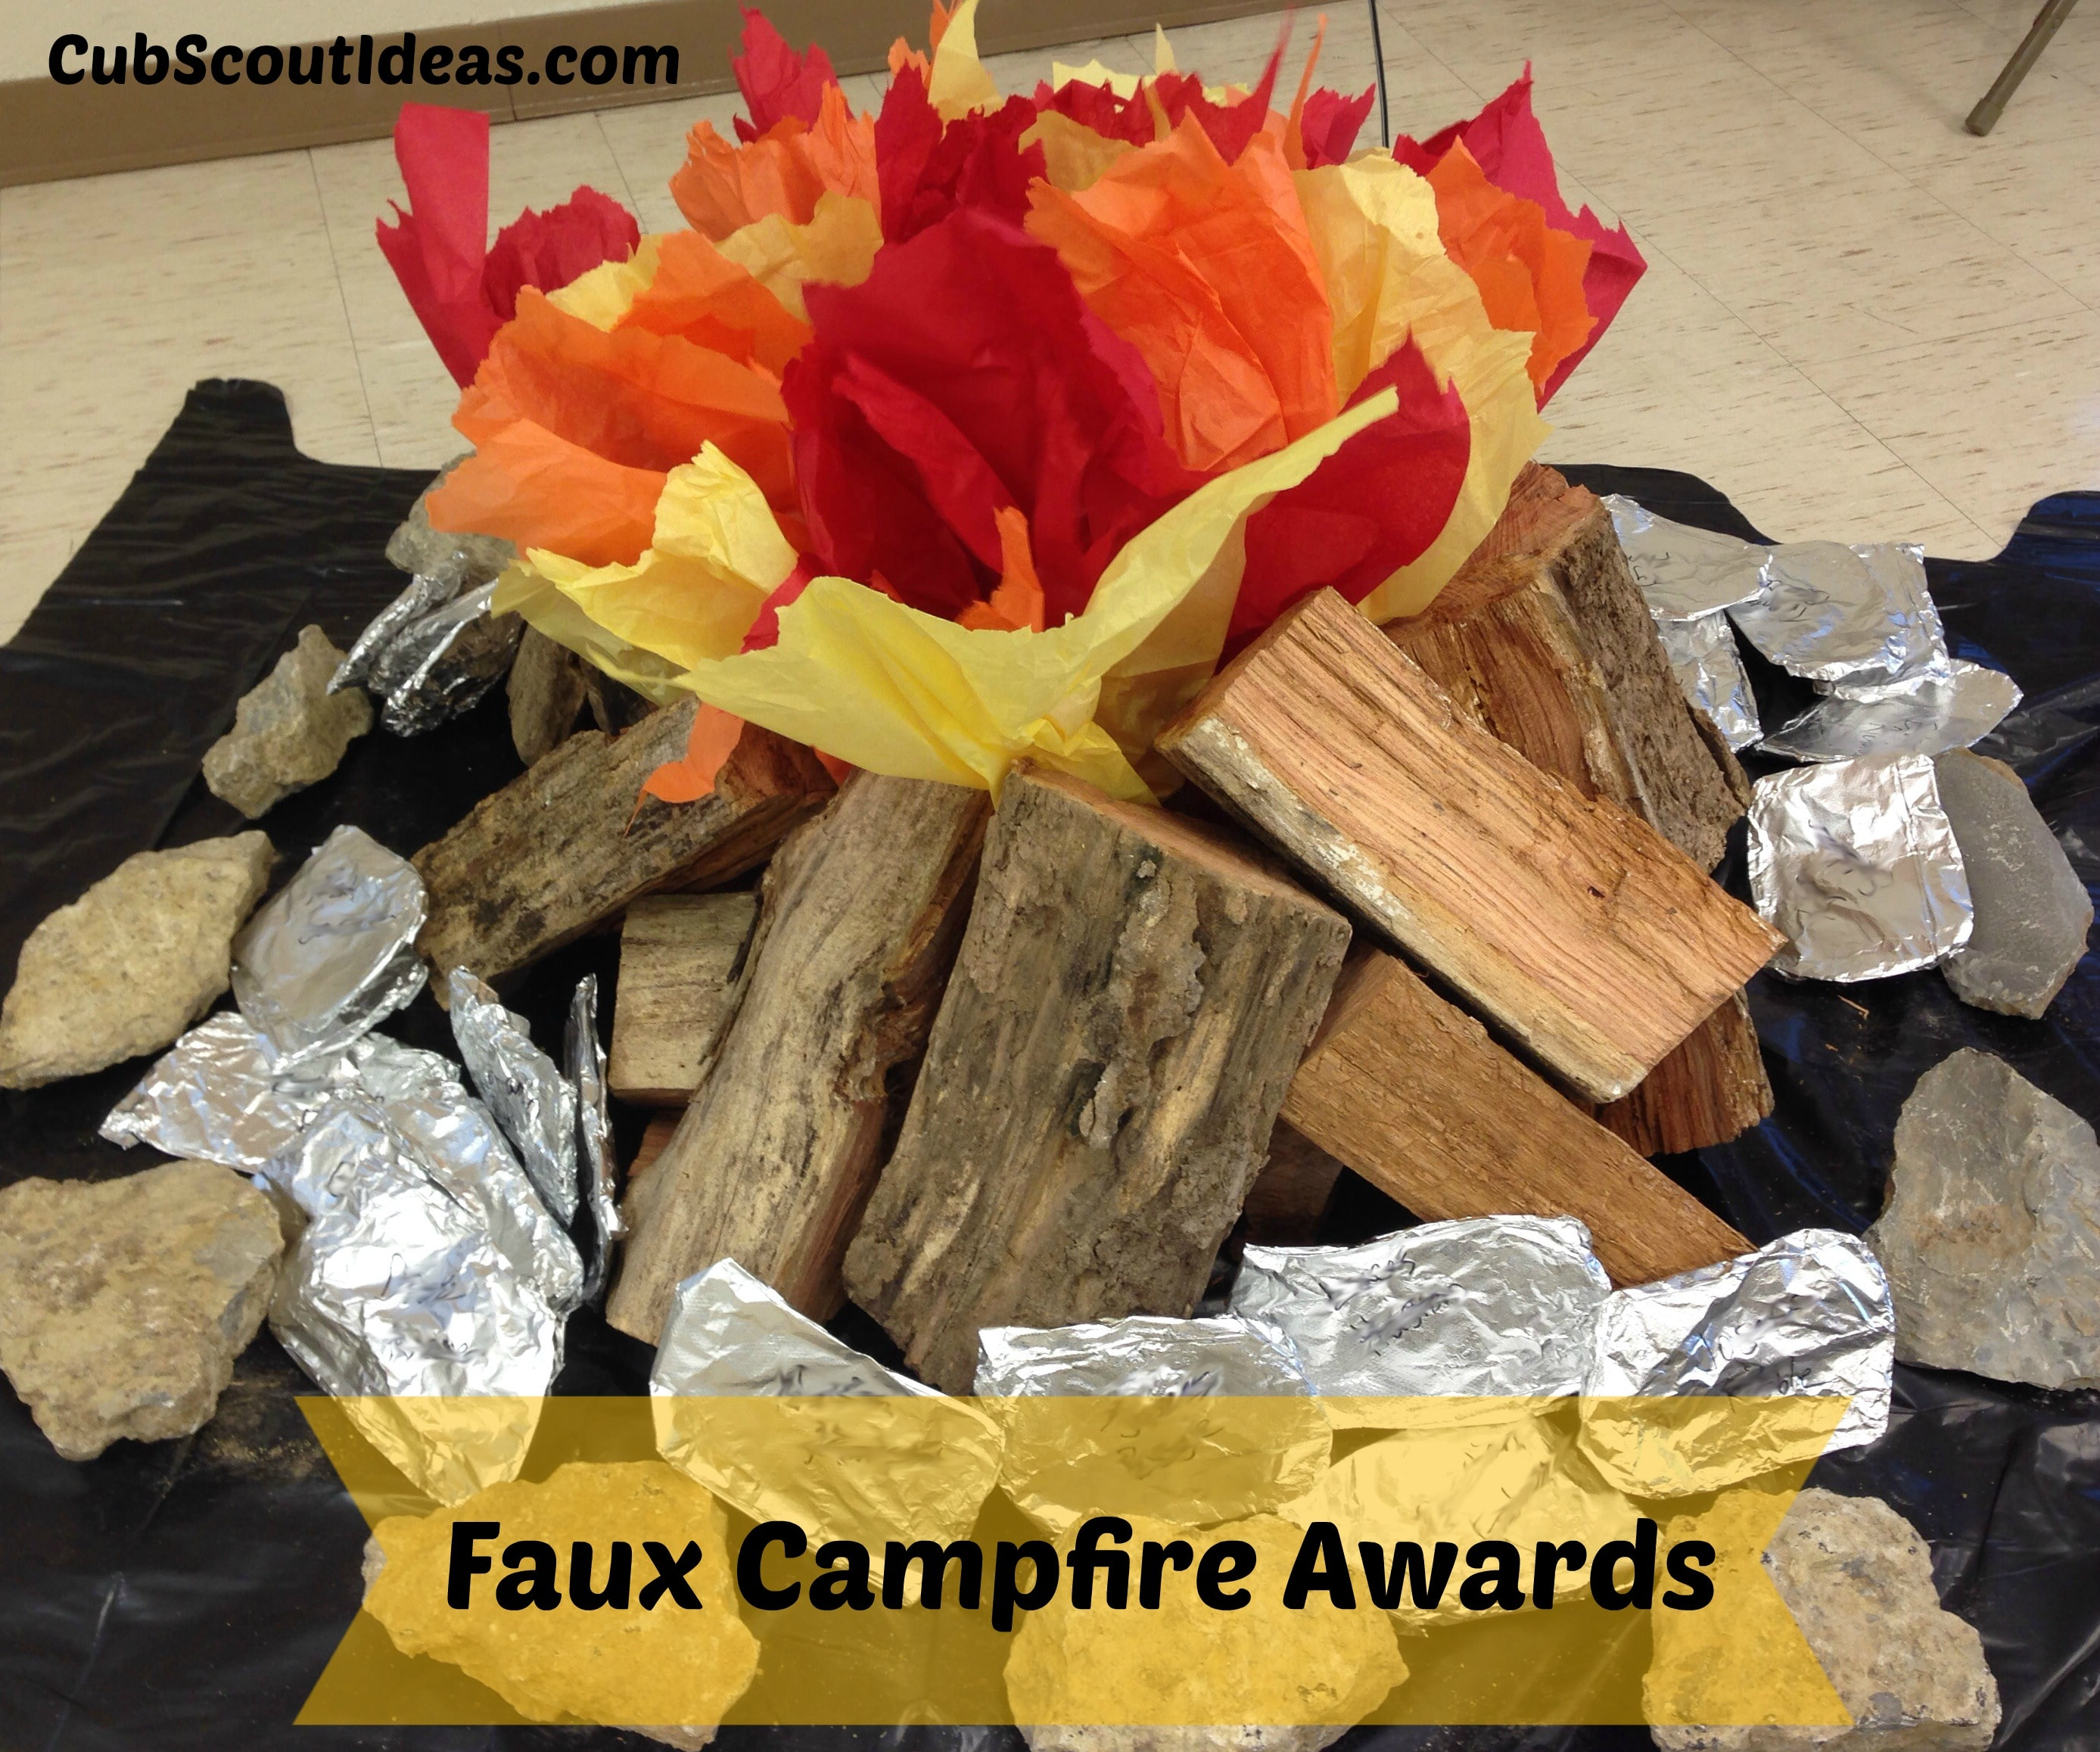 cub scout campfire awards